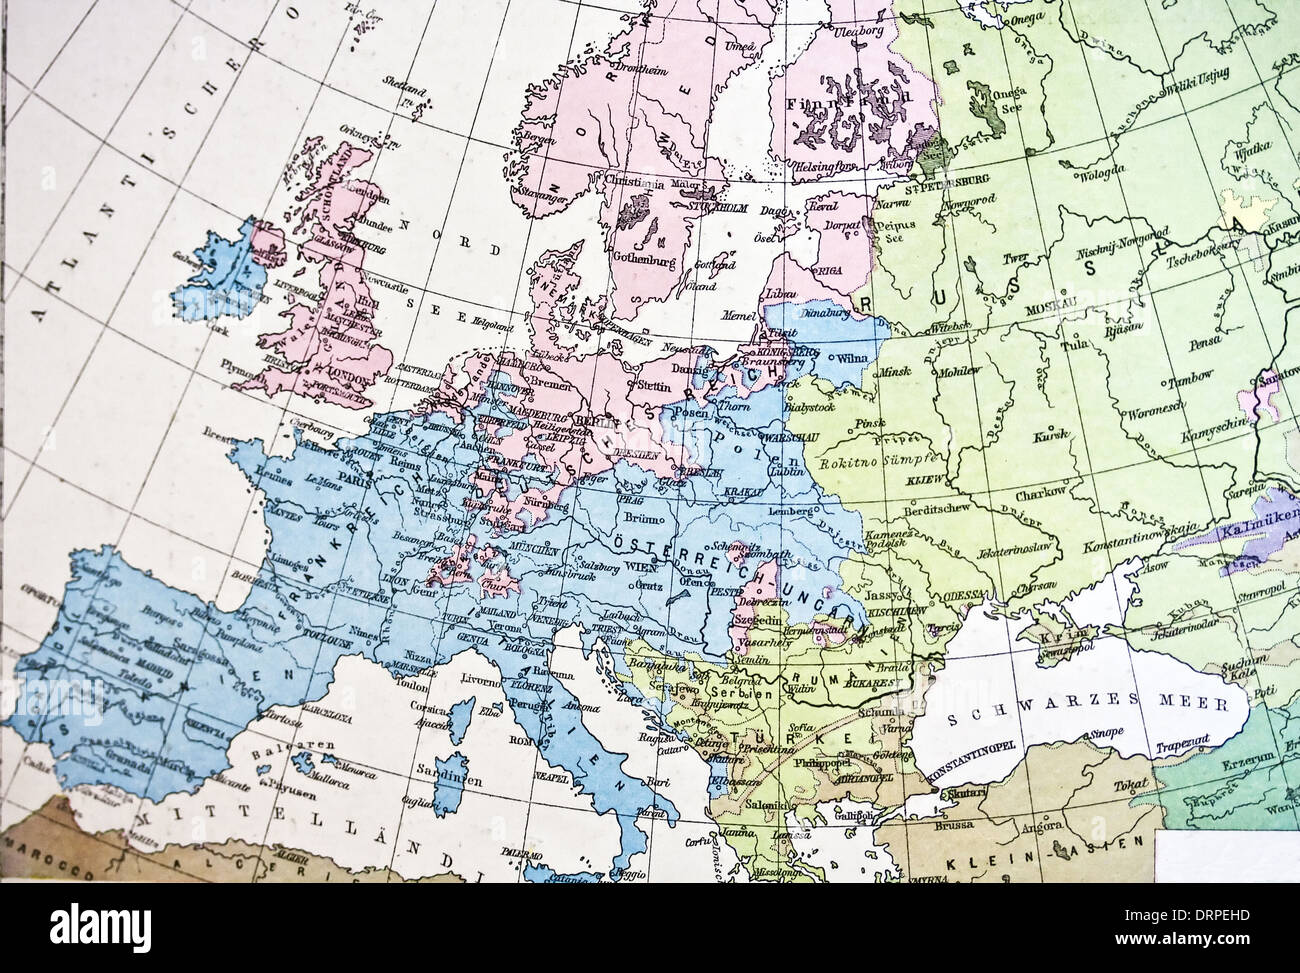 Ancient map or Europe Handmade in 1881 Stock Photo Royalty Free Image 6626